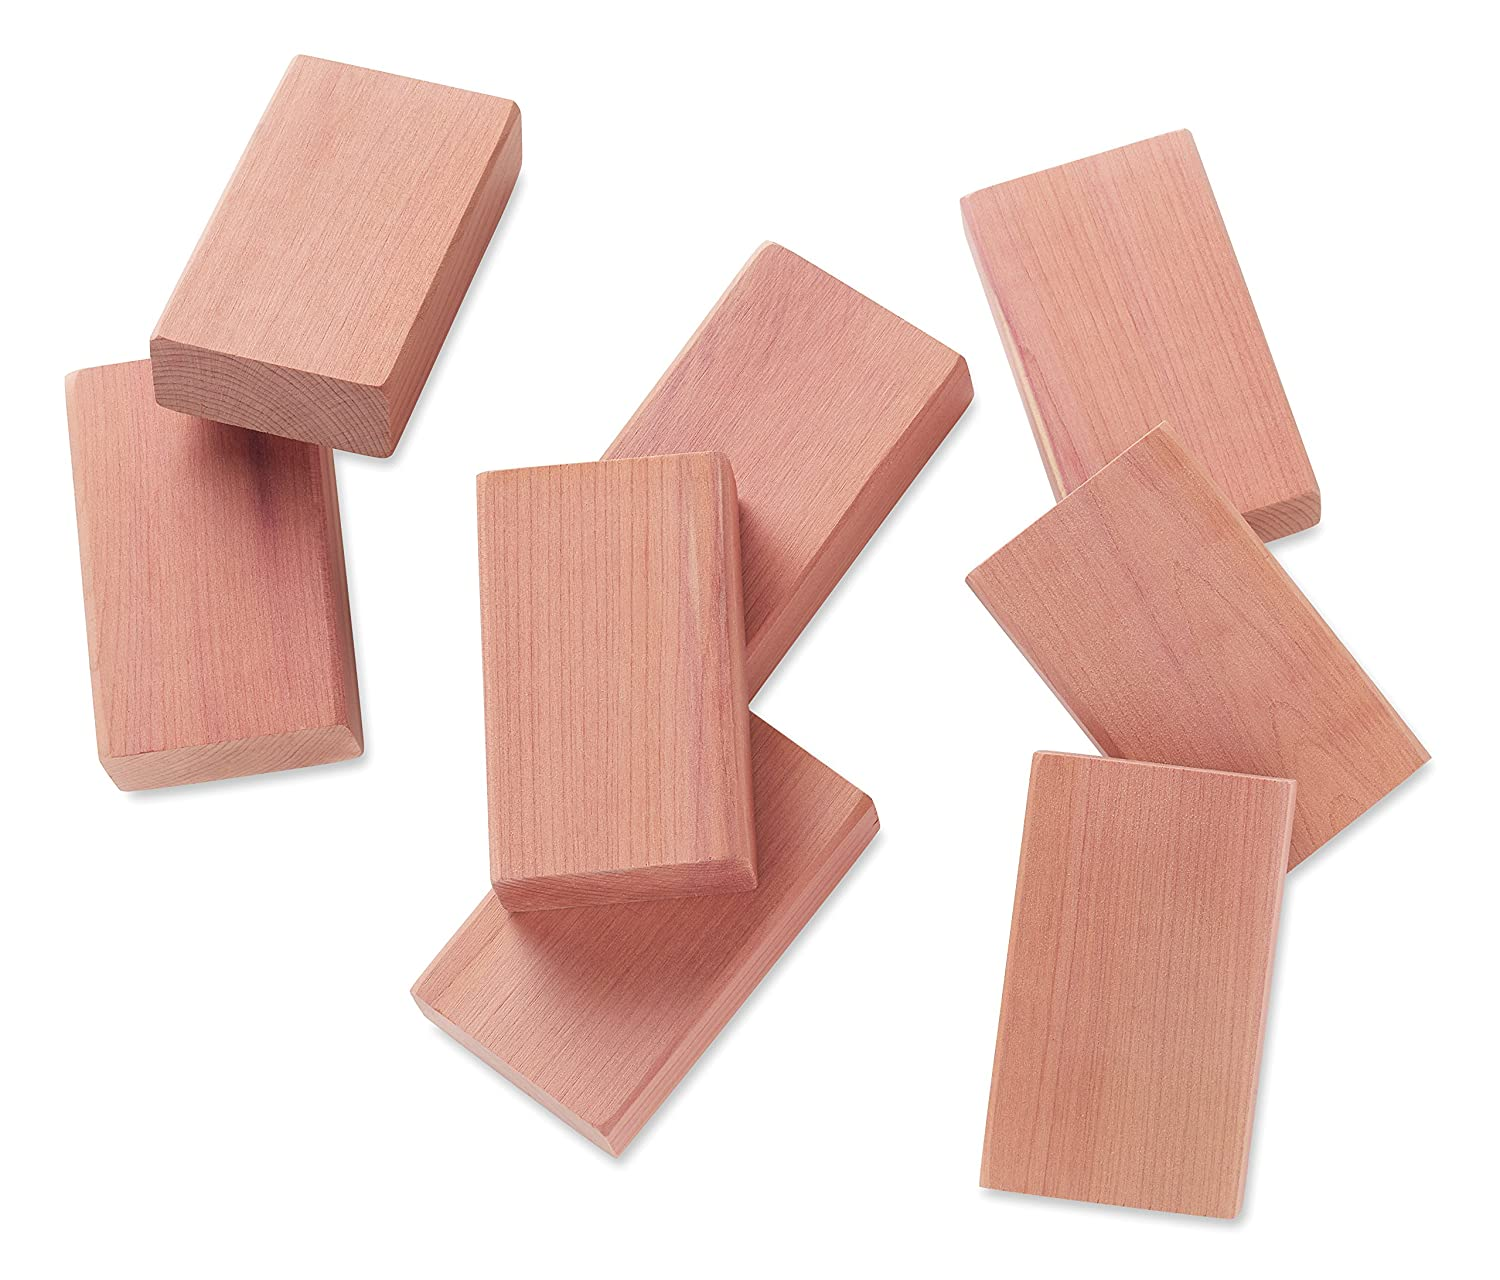 Whitmor 6280-7260 Aromatic Cedar Blocks-S/8